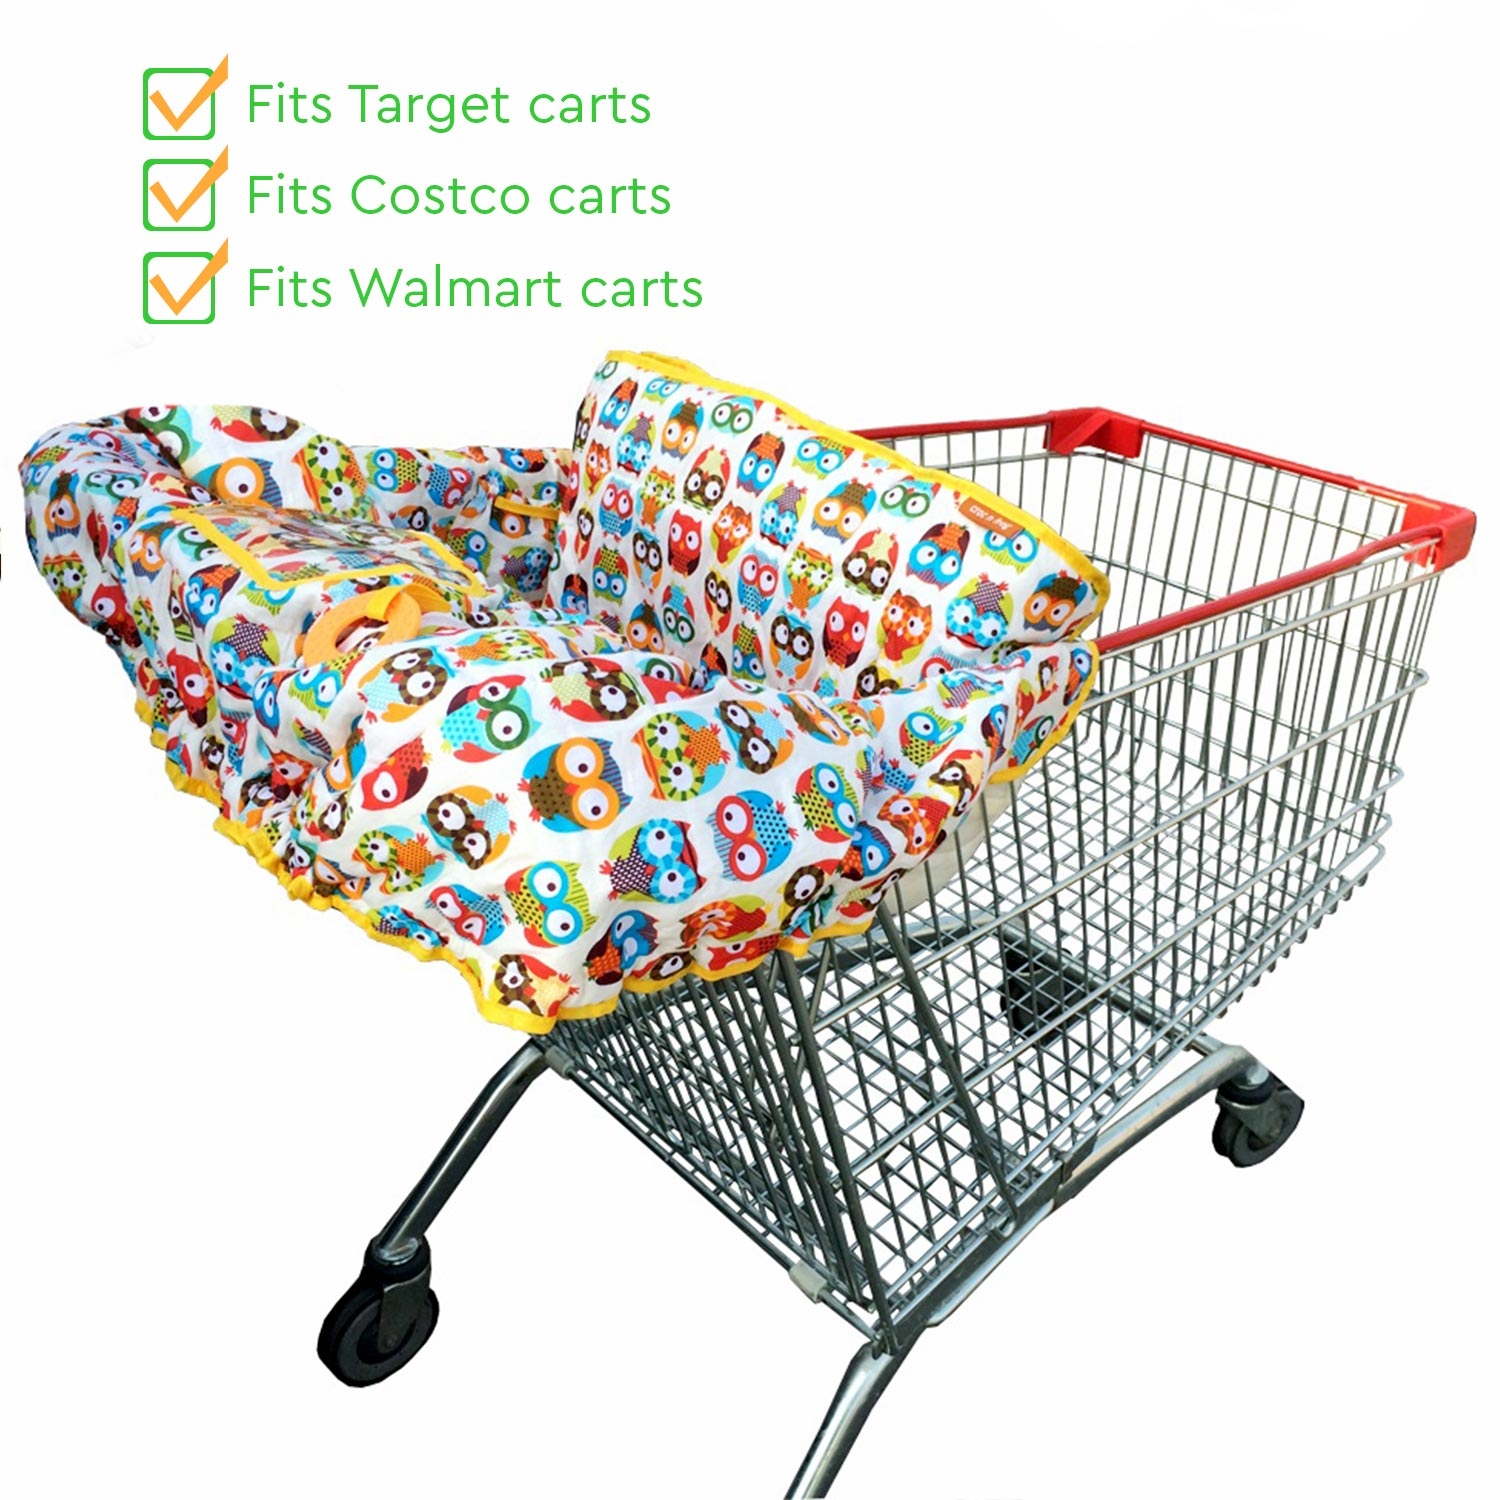 LARGE shopping cart/high chair cover